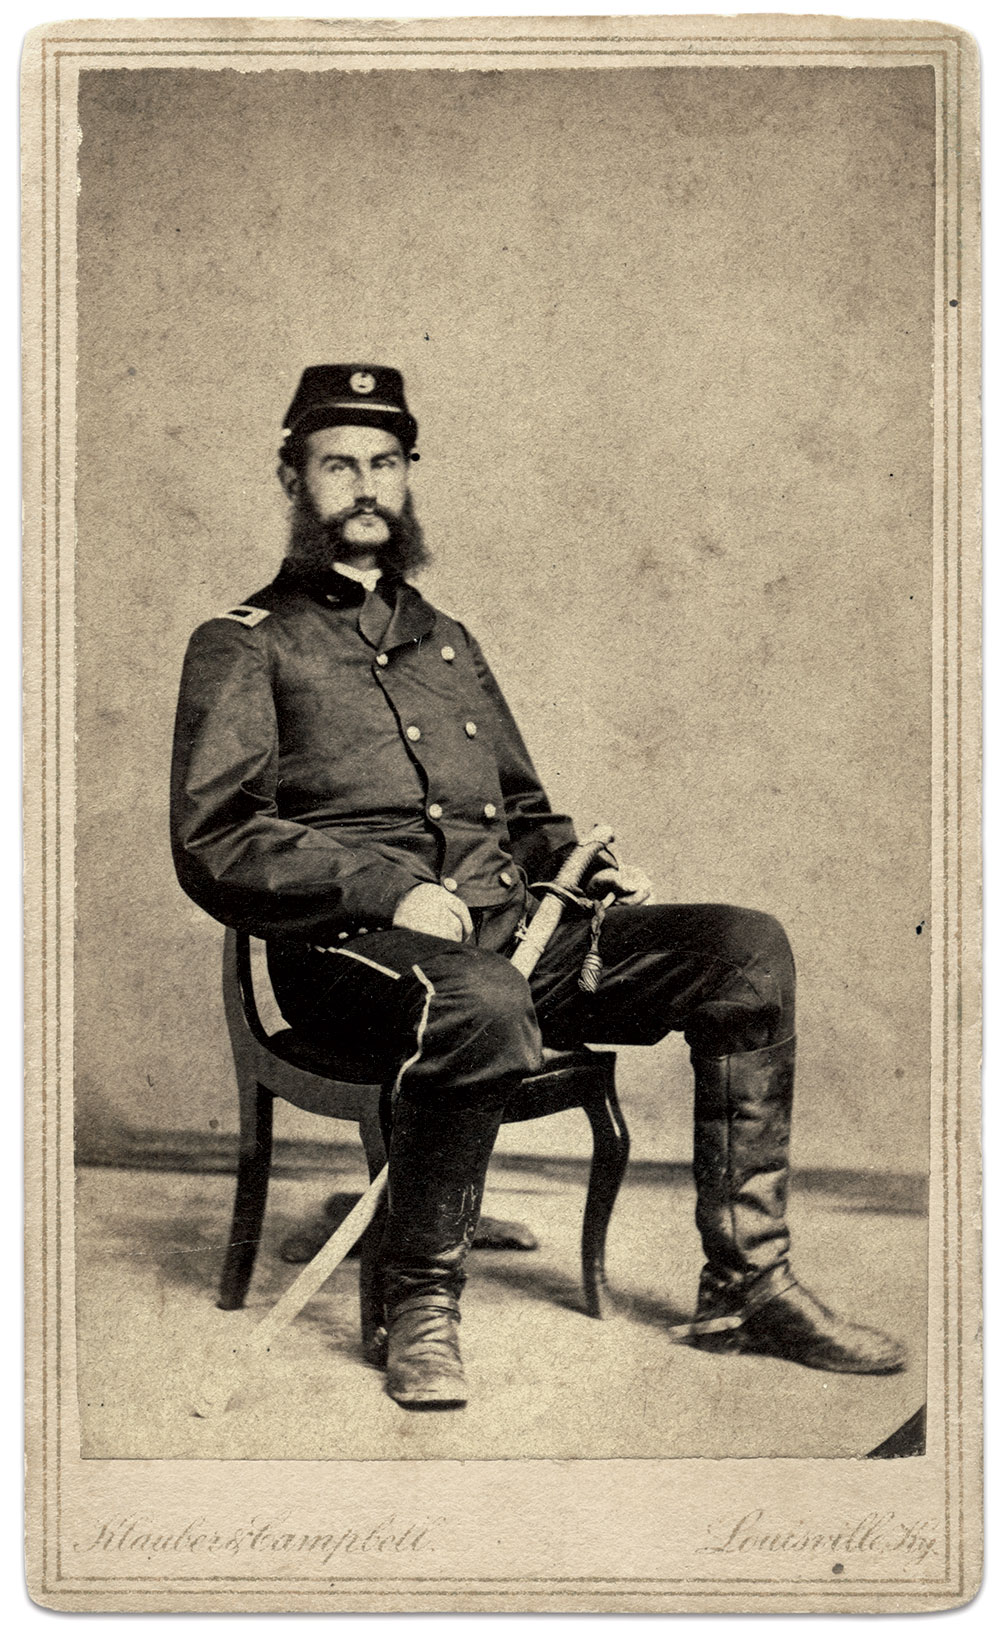 Adam Kramer, pictured as a first lieutenant in the 15th Pennsylvania Cavalry. Carte de visite by Klauber & Campbell of Louisville, Ky. Jim Quinlan Collection.